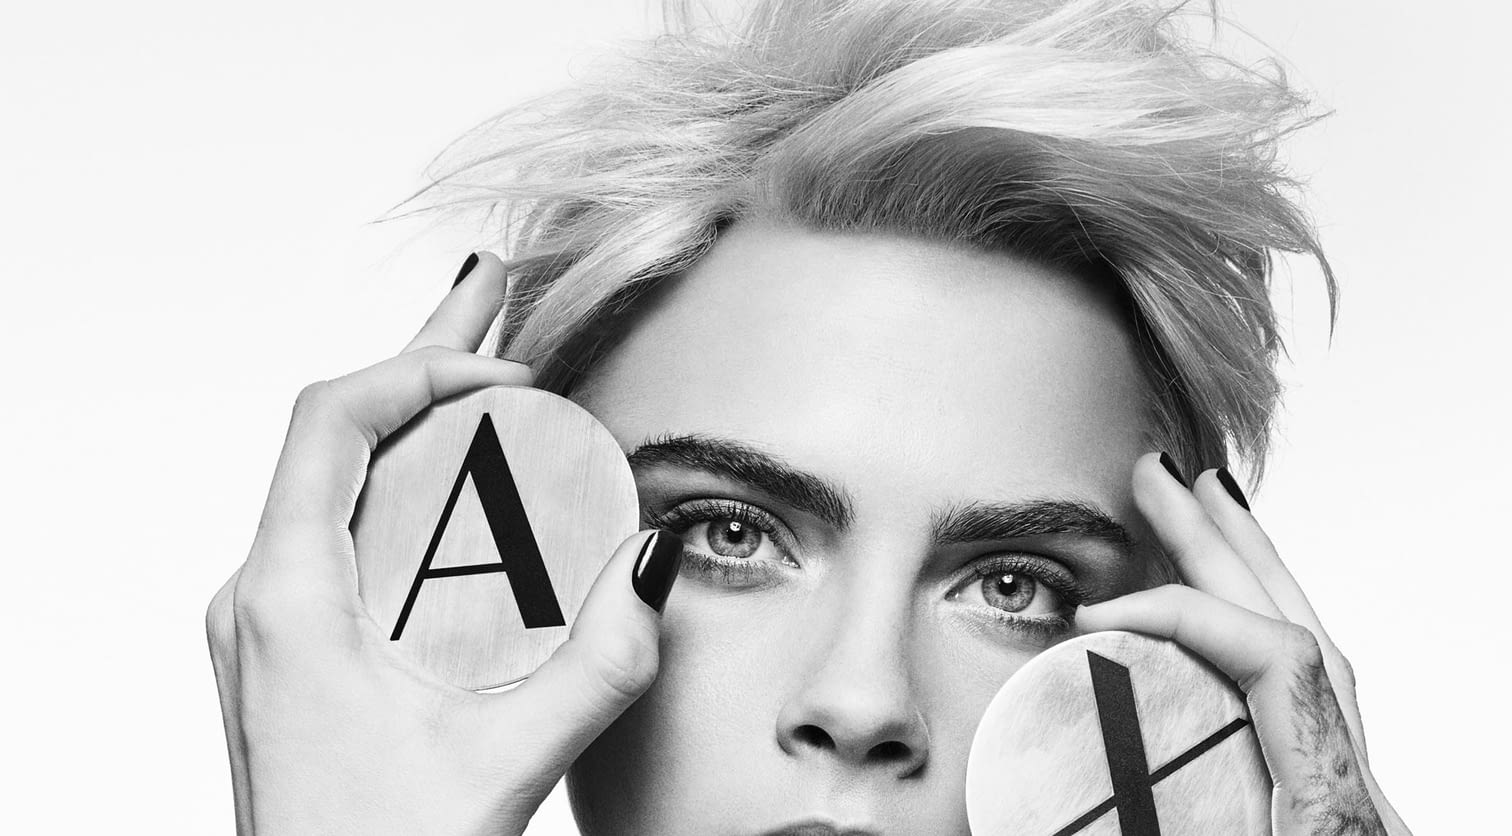 CARA DELEVINGNE, MARTIN GARRIX AND LI YIFENG FRONT THE NEW AX ARMANI EXCHANGE FW 1718 ADVERTISING CAMPAIGN (1).jpg